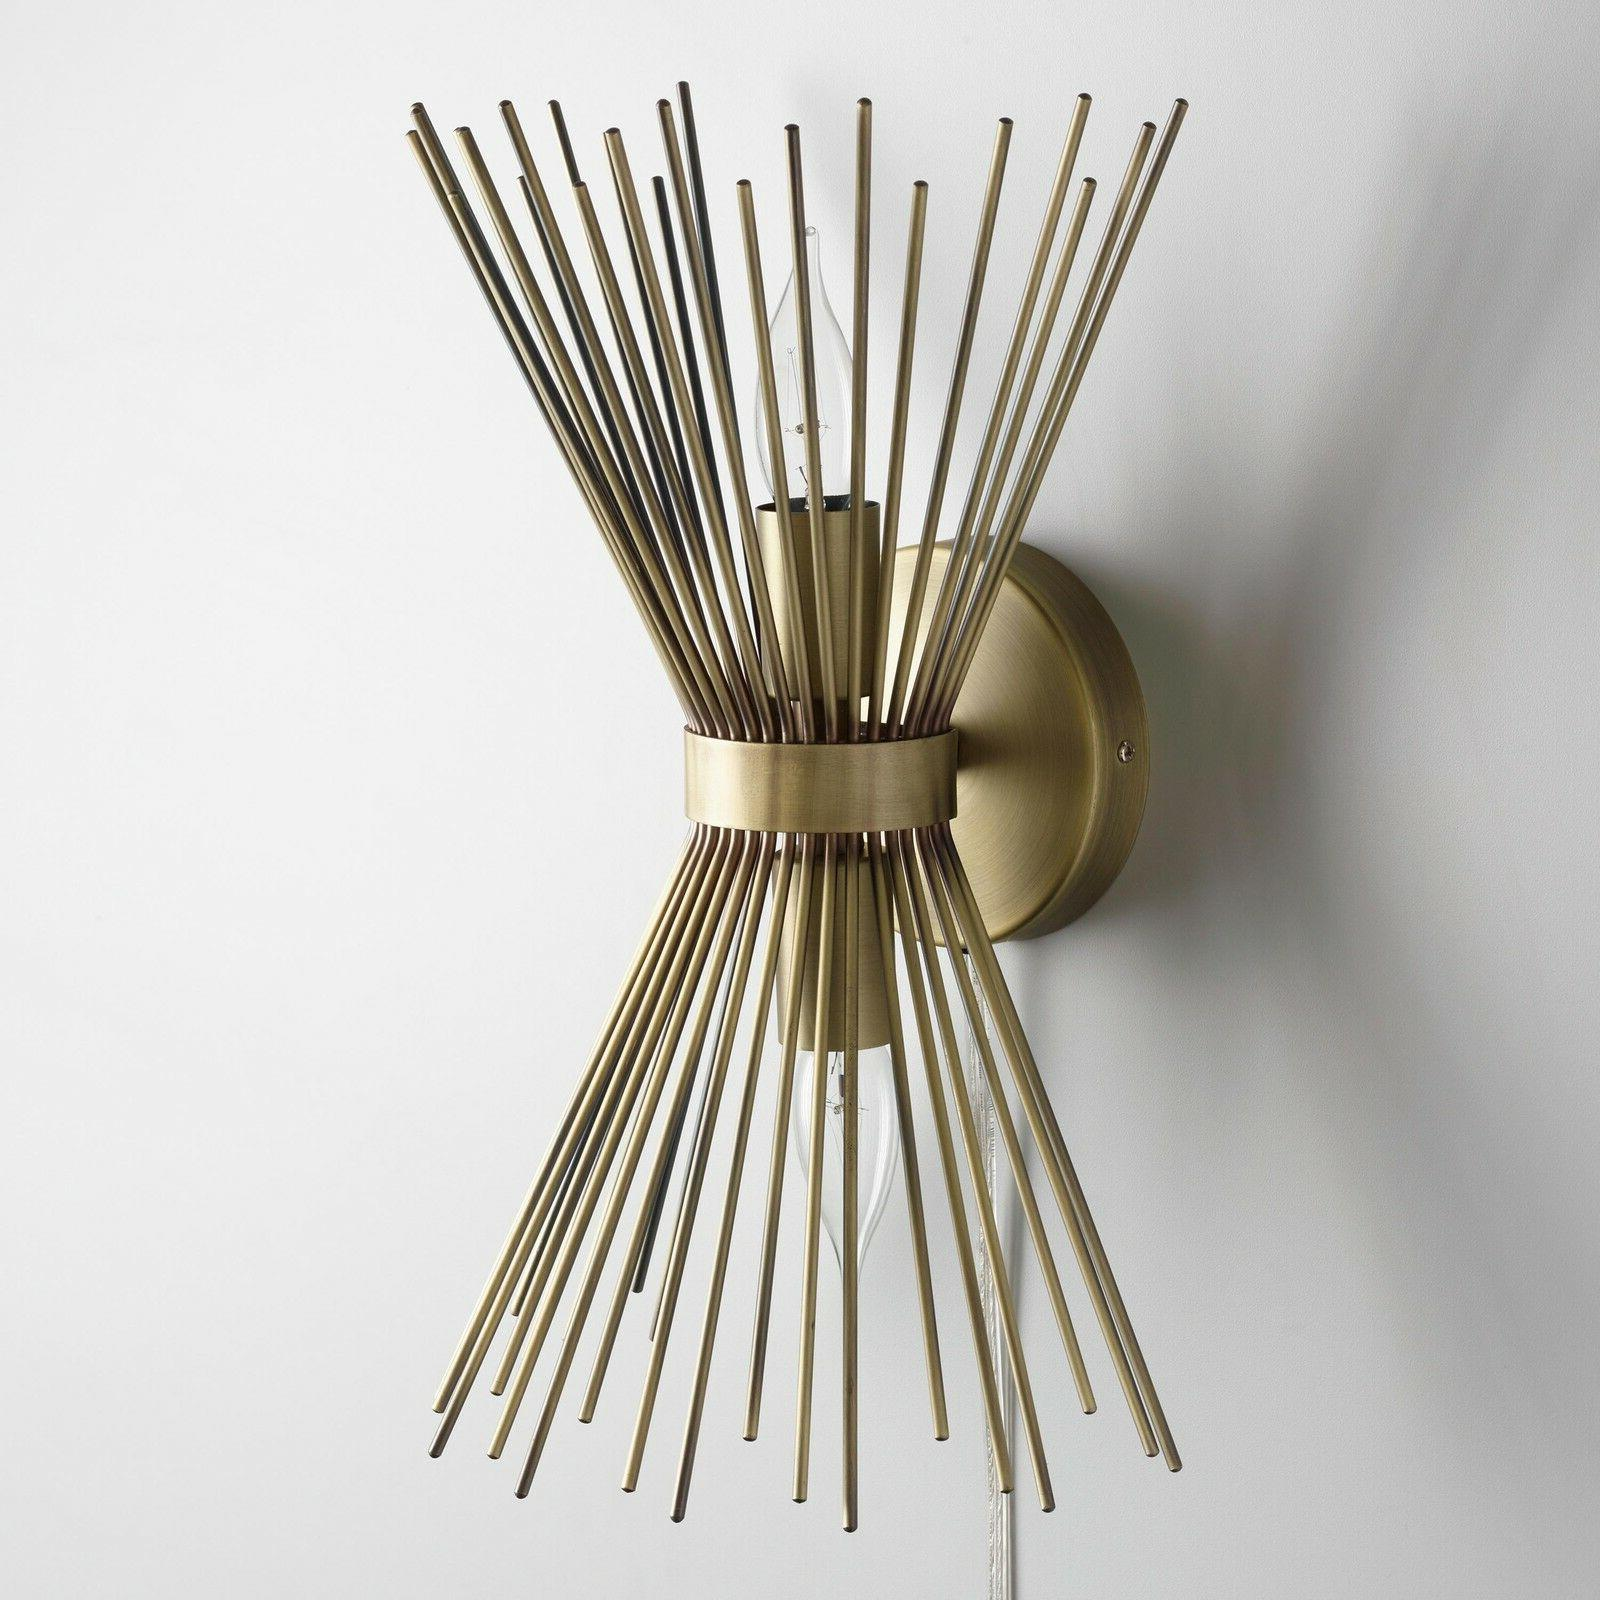 Brass Sconce Lamp, Cord, Hardwire